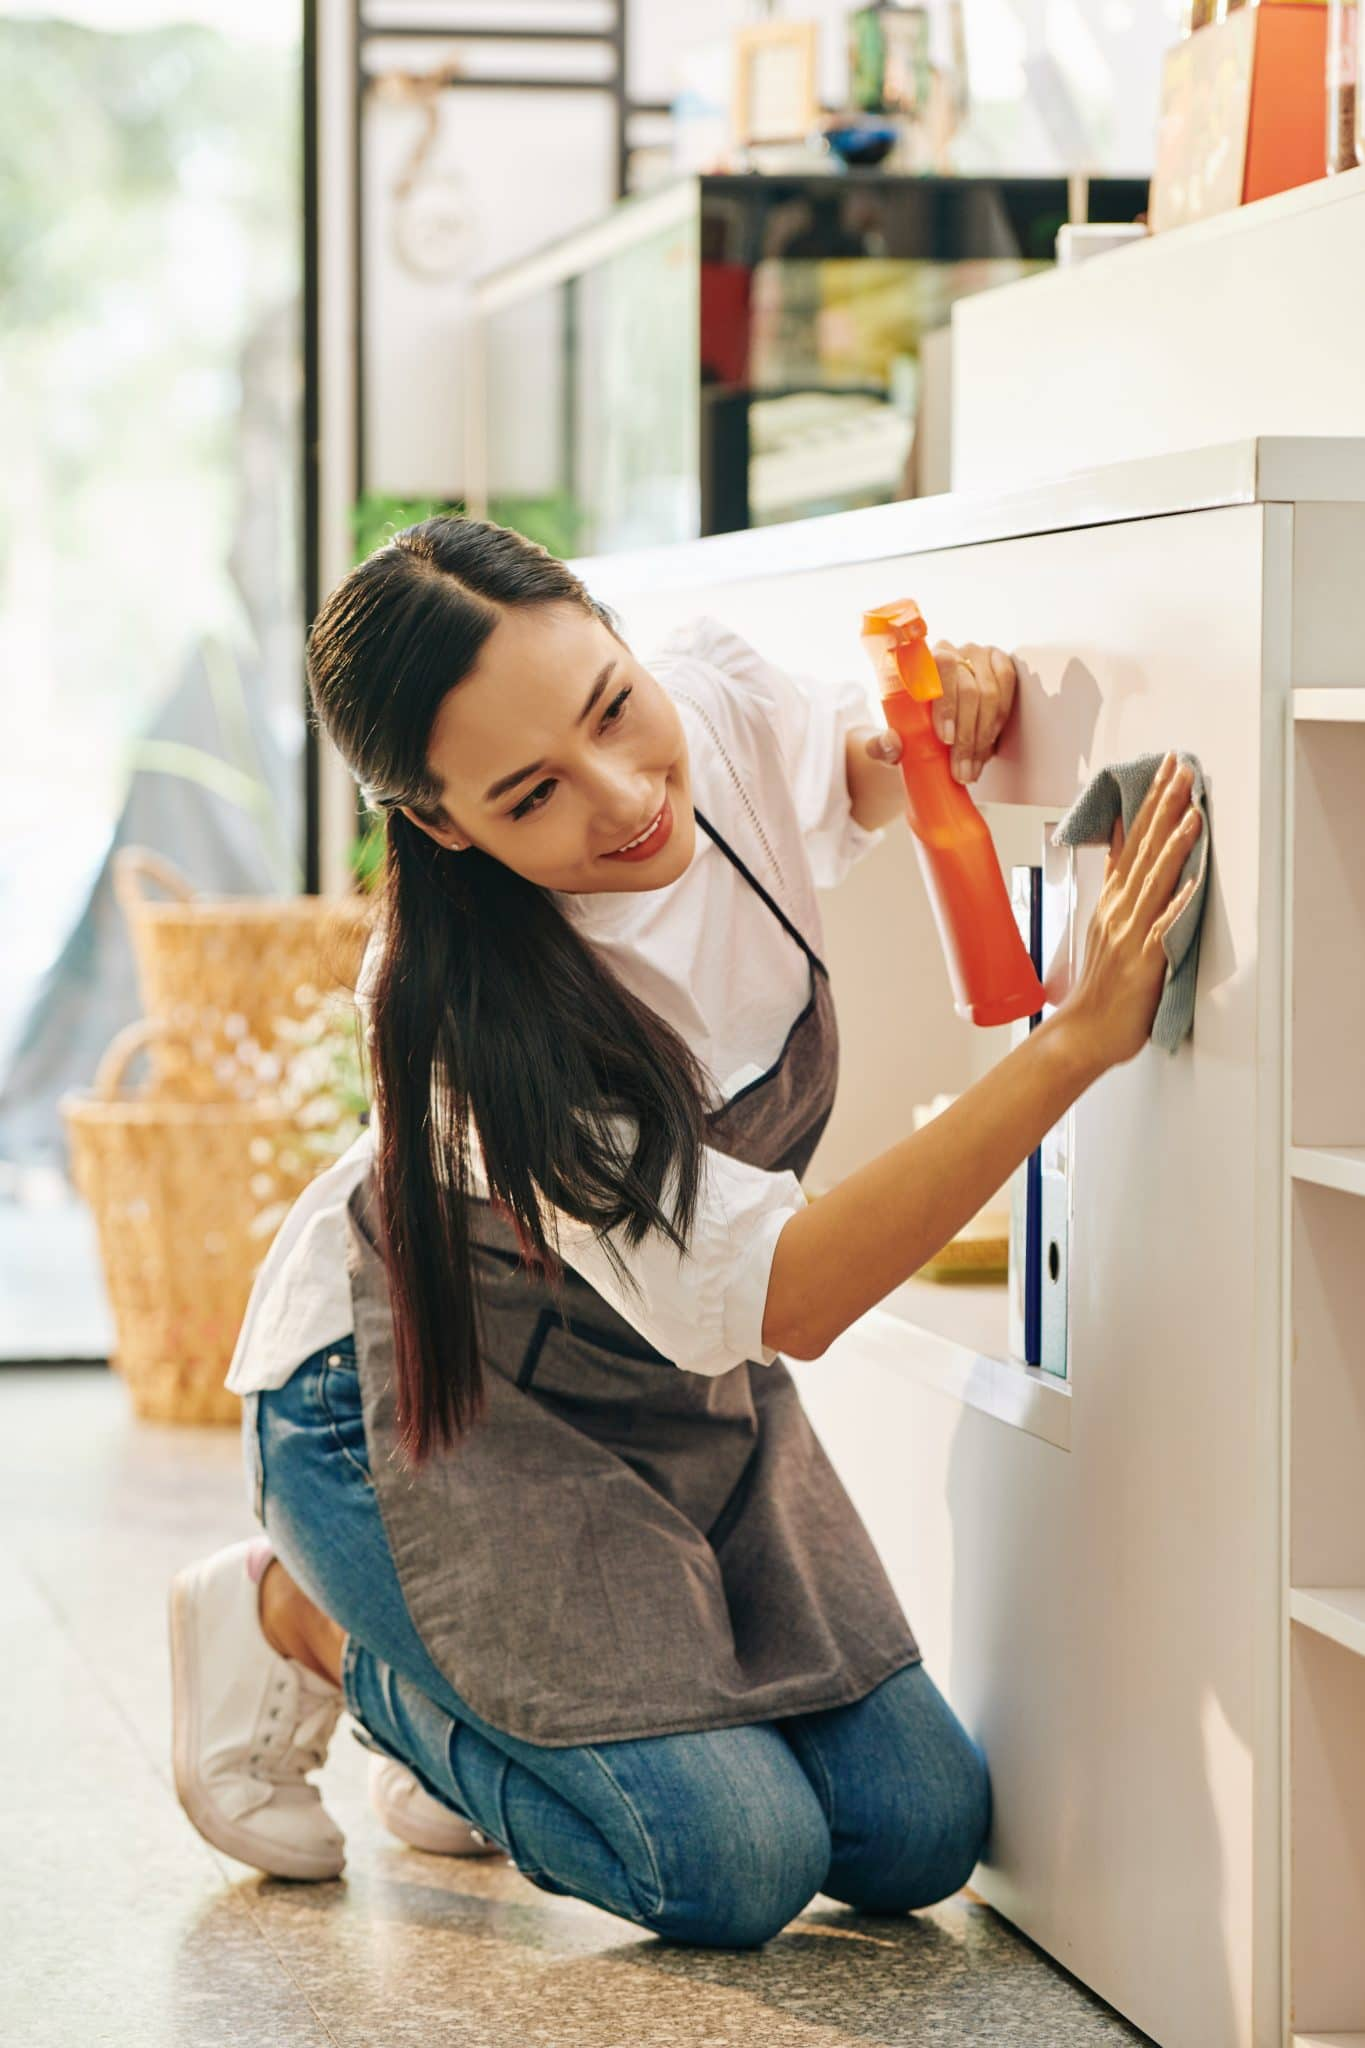 woman-on-her-knees-cleaning-appliances - hazards of bleach on unprotected skin